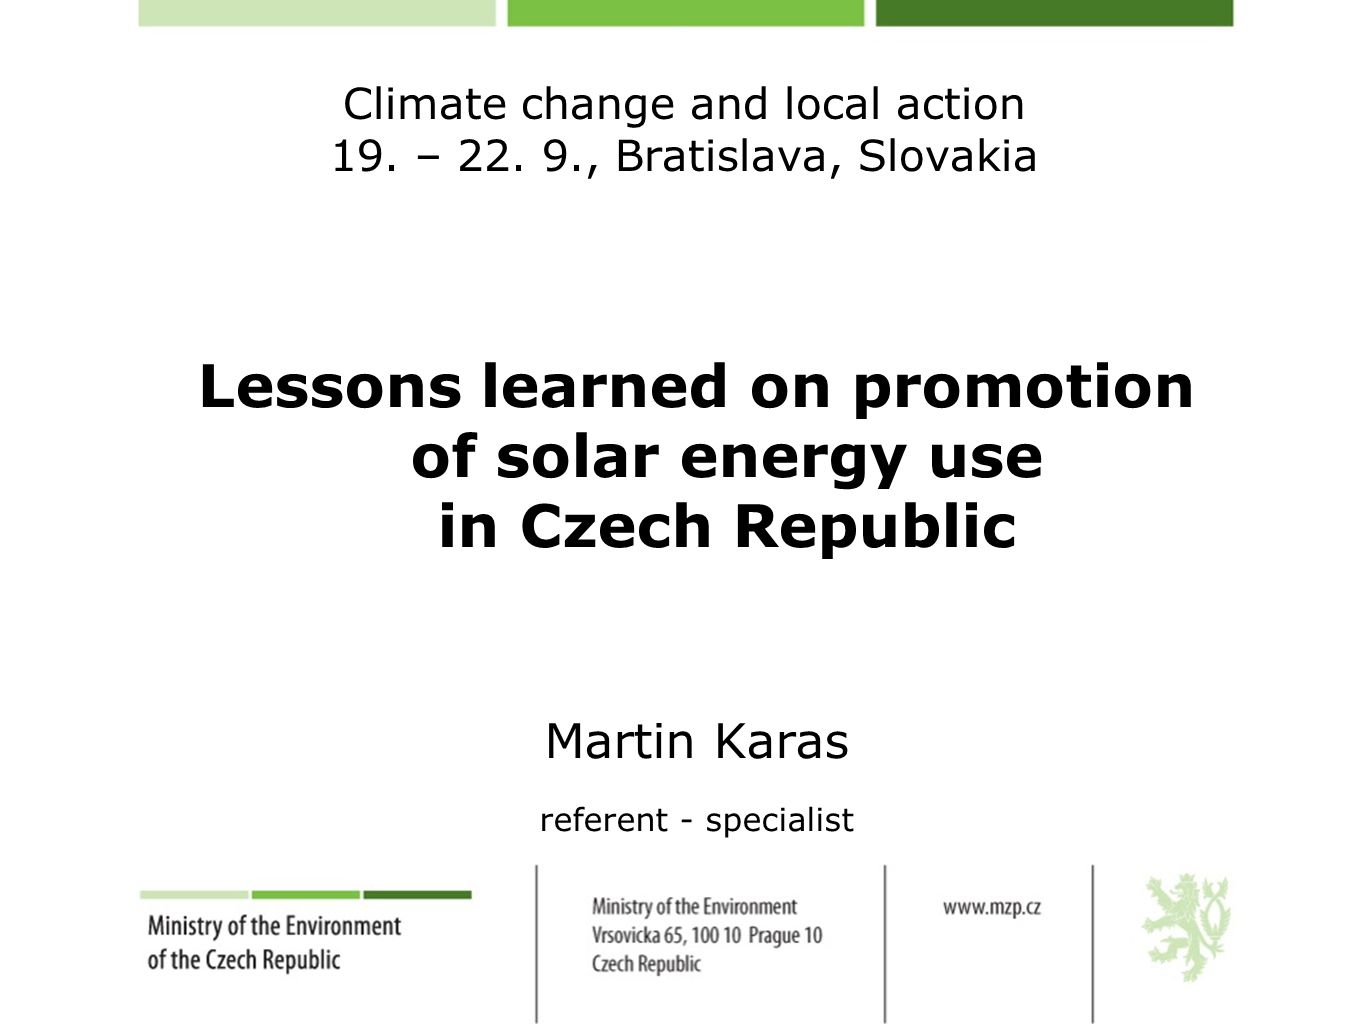 Climate change and local action 19. – 22.